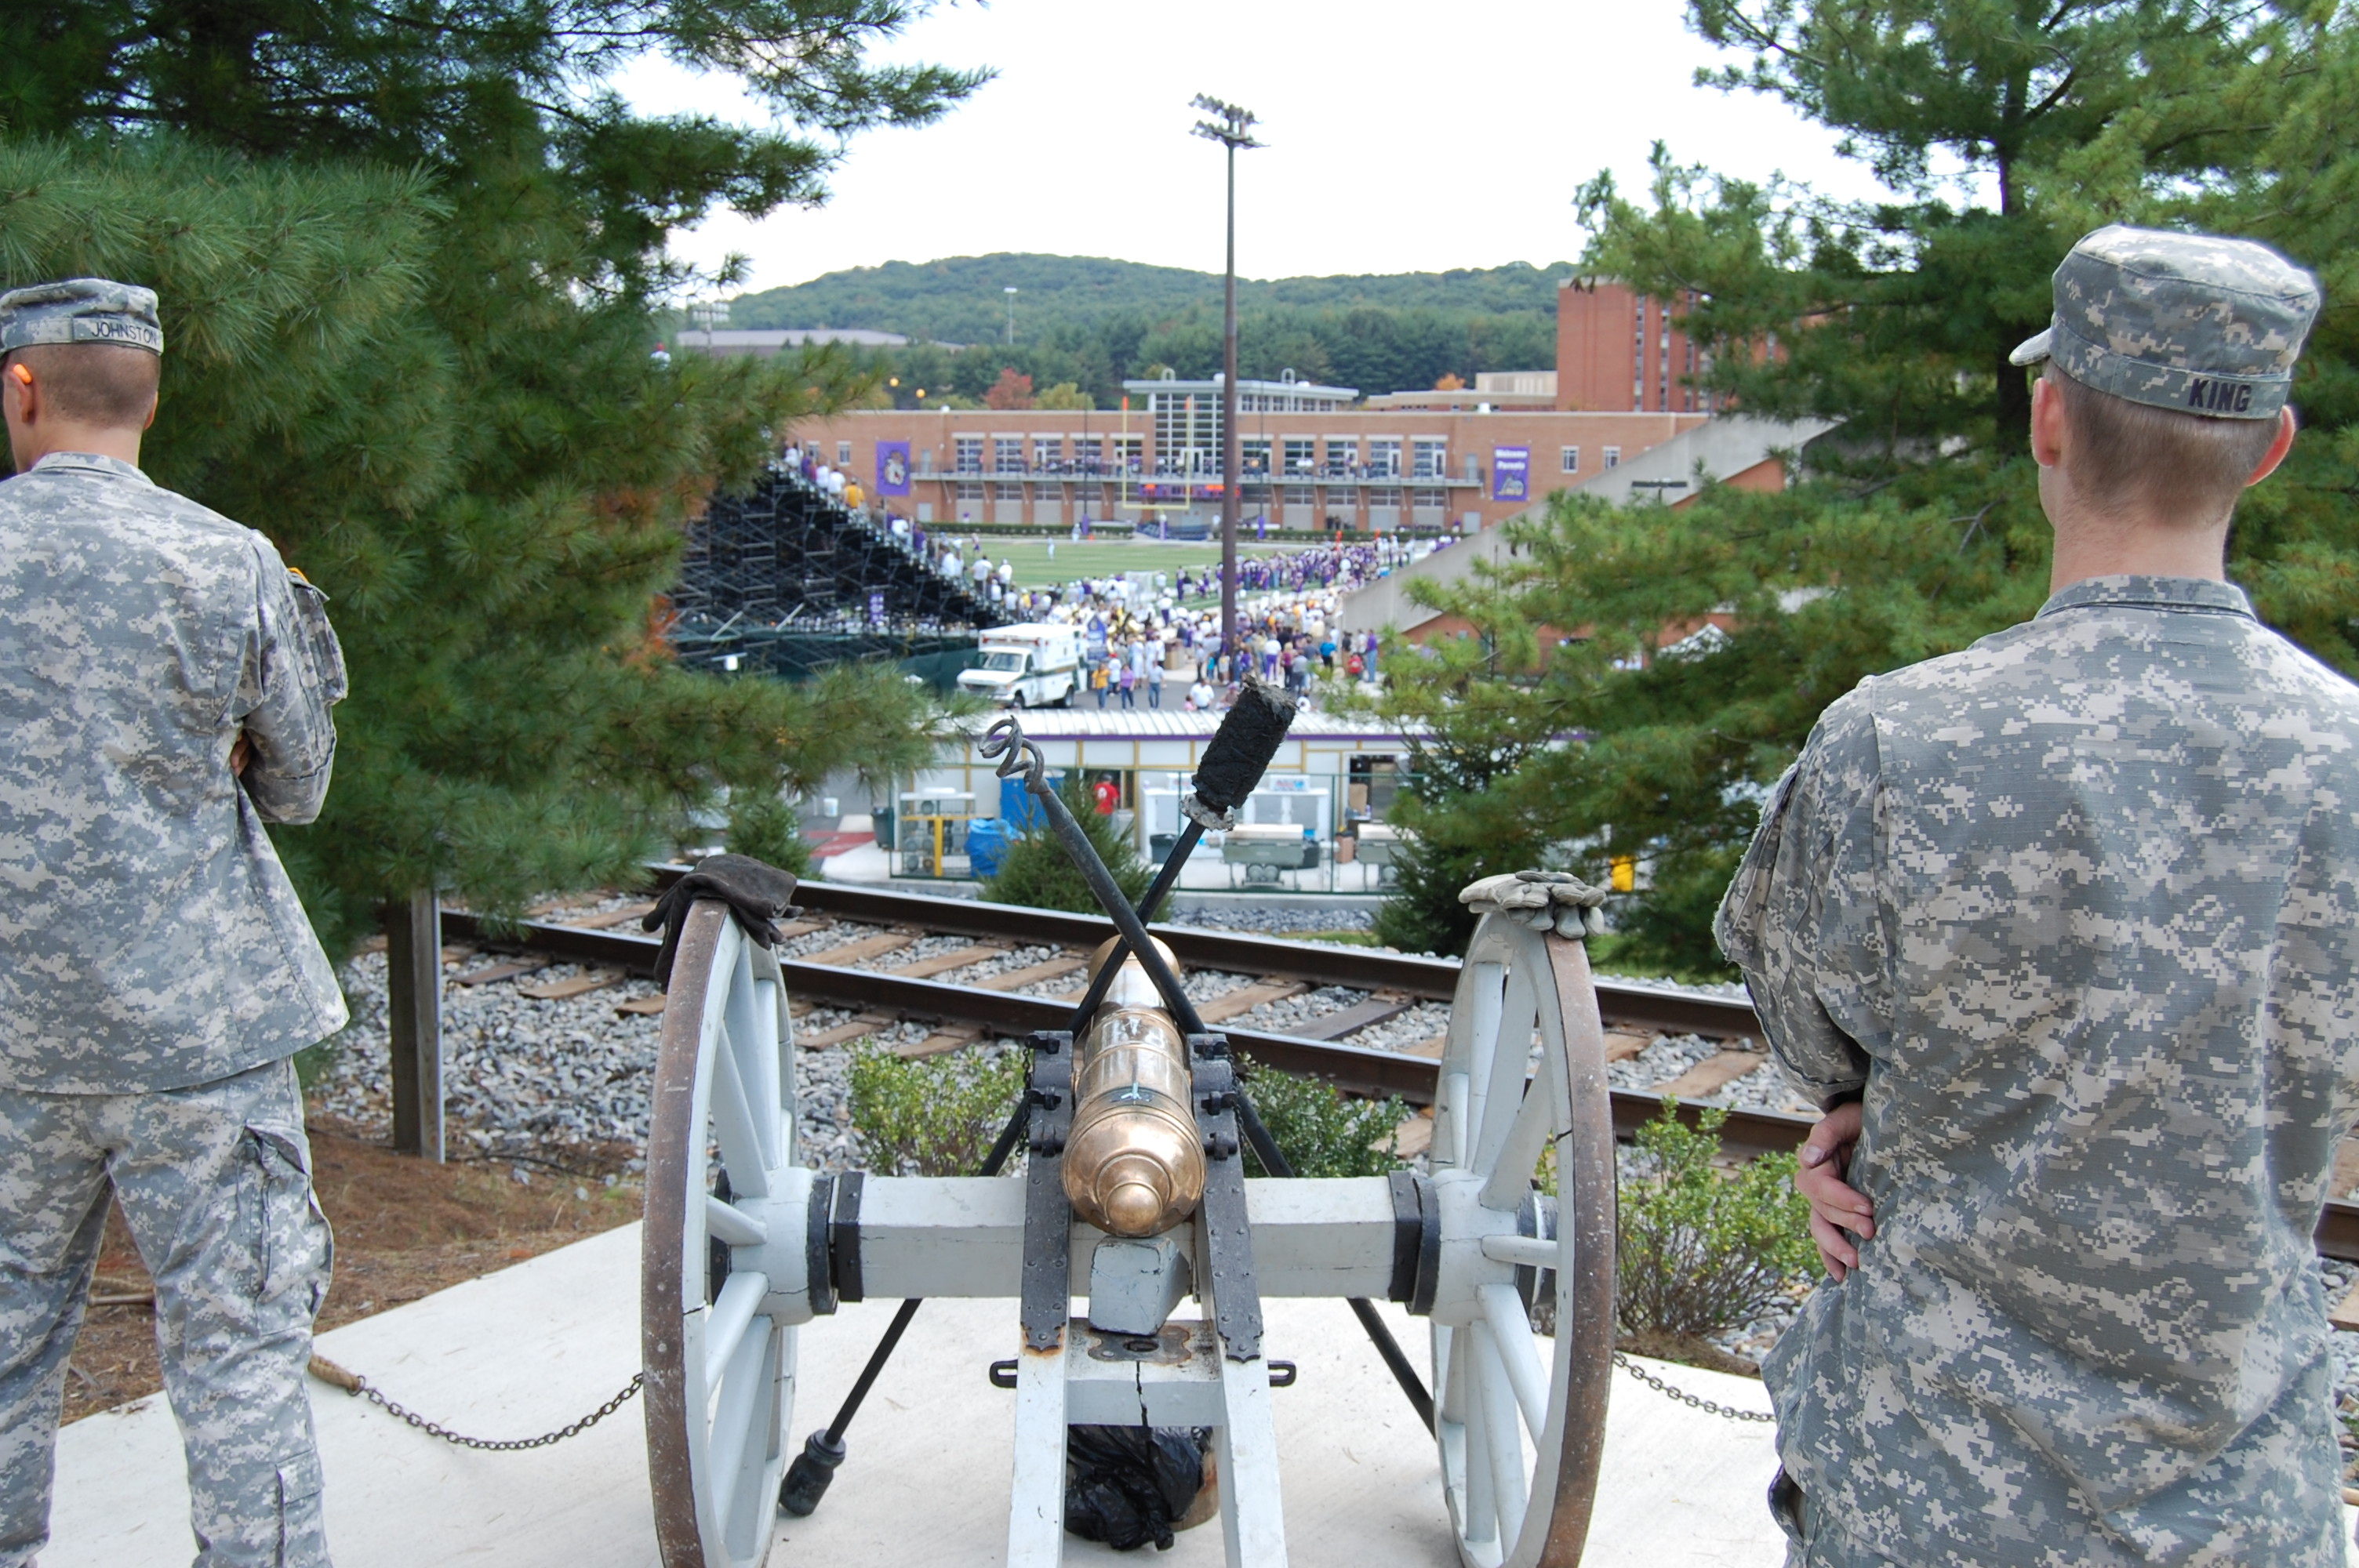 Cannon over looking stadium.JPG